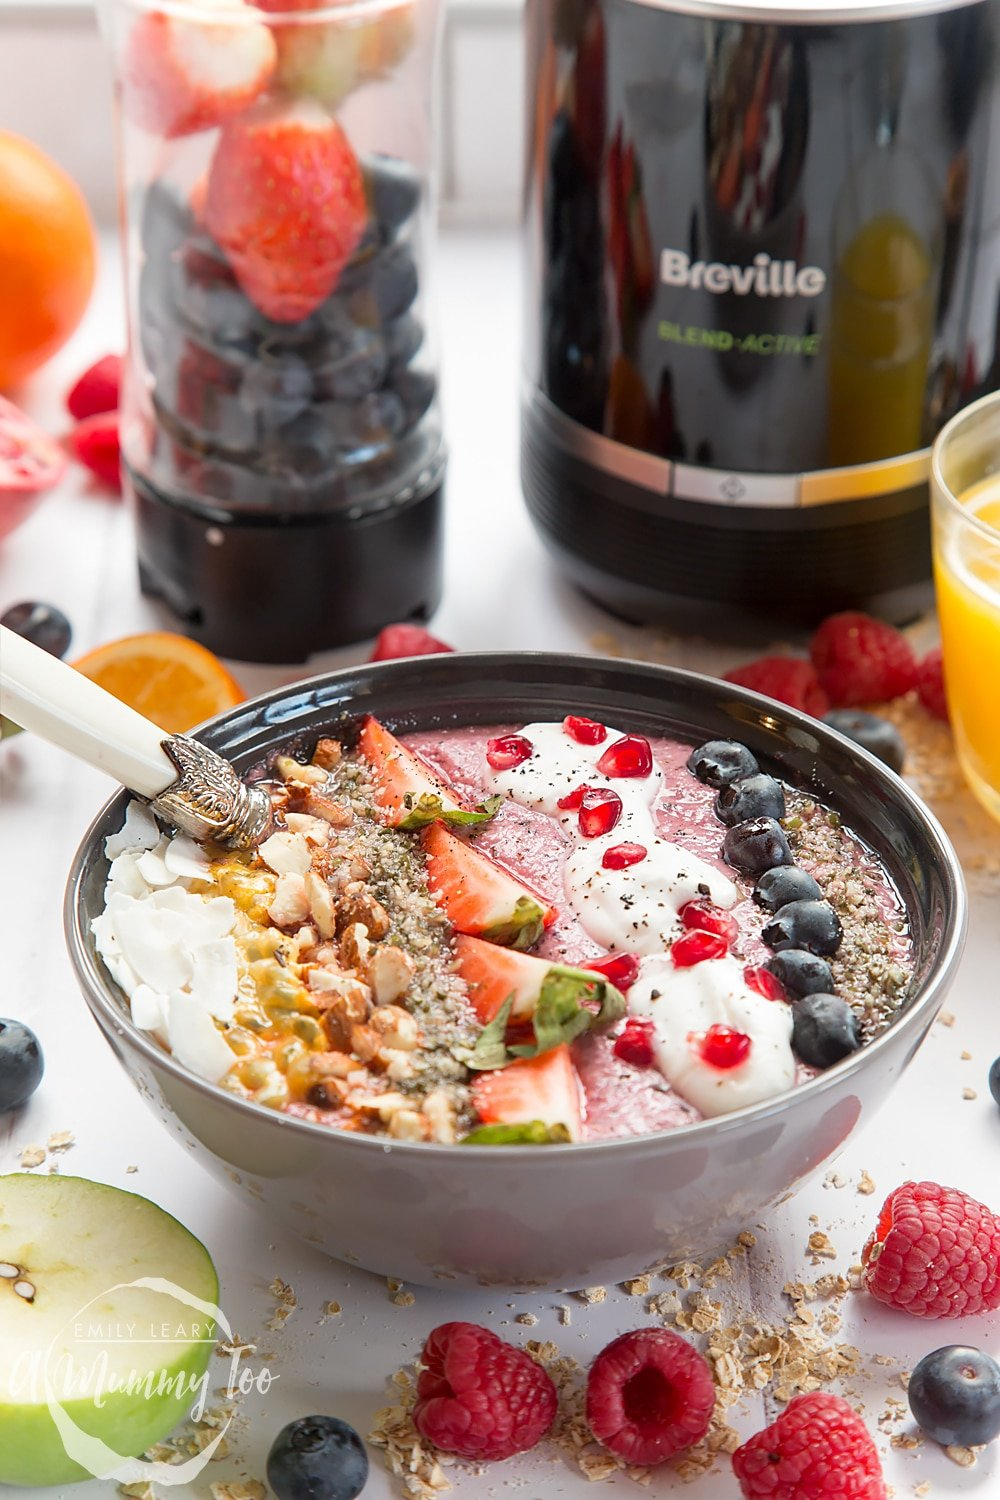 Enjoy this healthy and delicious vegan fruit and nut smoothie bowl for breakfast